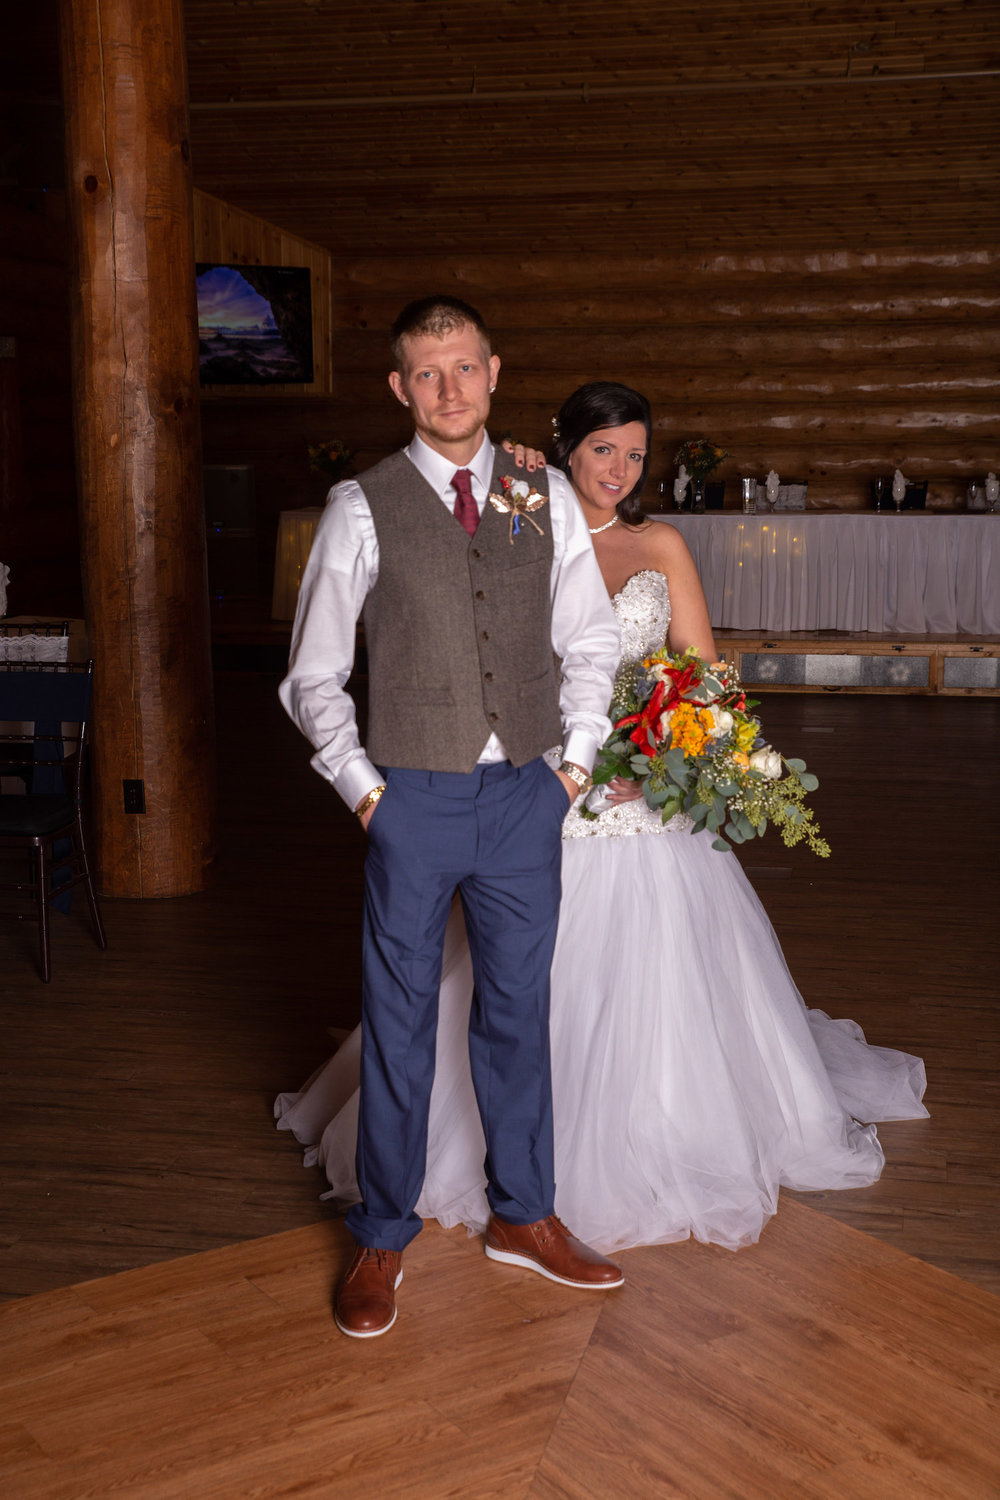 Glenhaven winter Minnesota wedding rustic barn, orange and yellow bouquet, groom in vest and navy pants